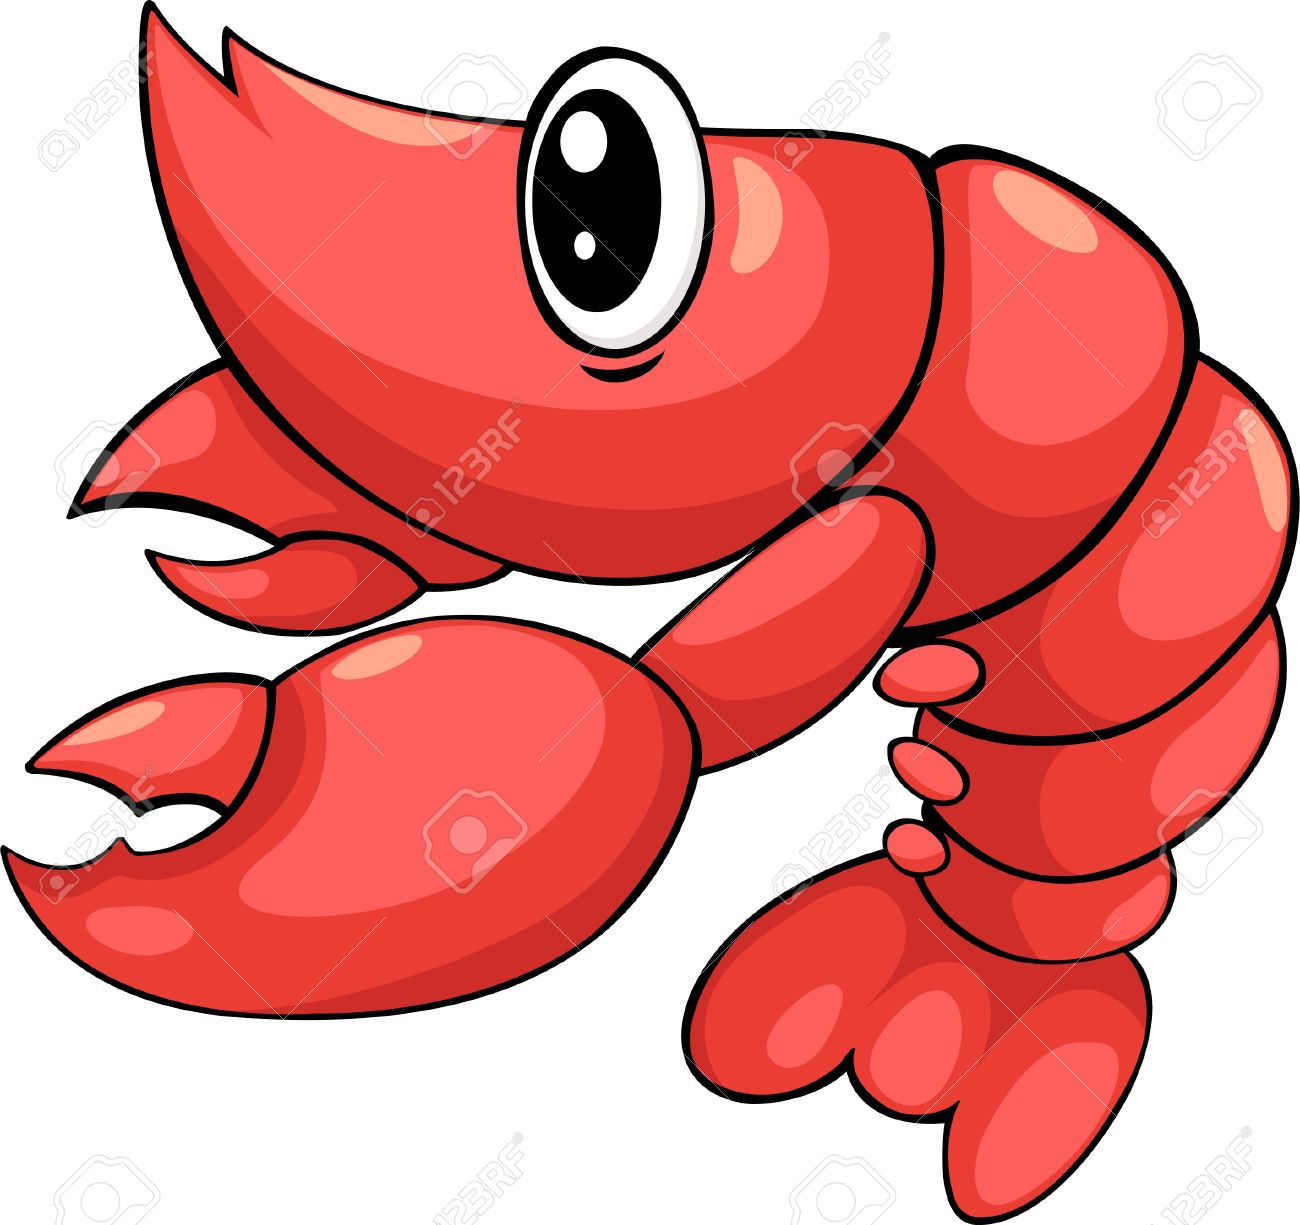 illustration shrimp vector file royalty free cliparts vectors and rh 123rf com Shrimp Boat Clip Art Fried Shrimp Clip Art